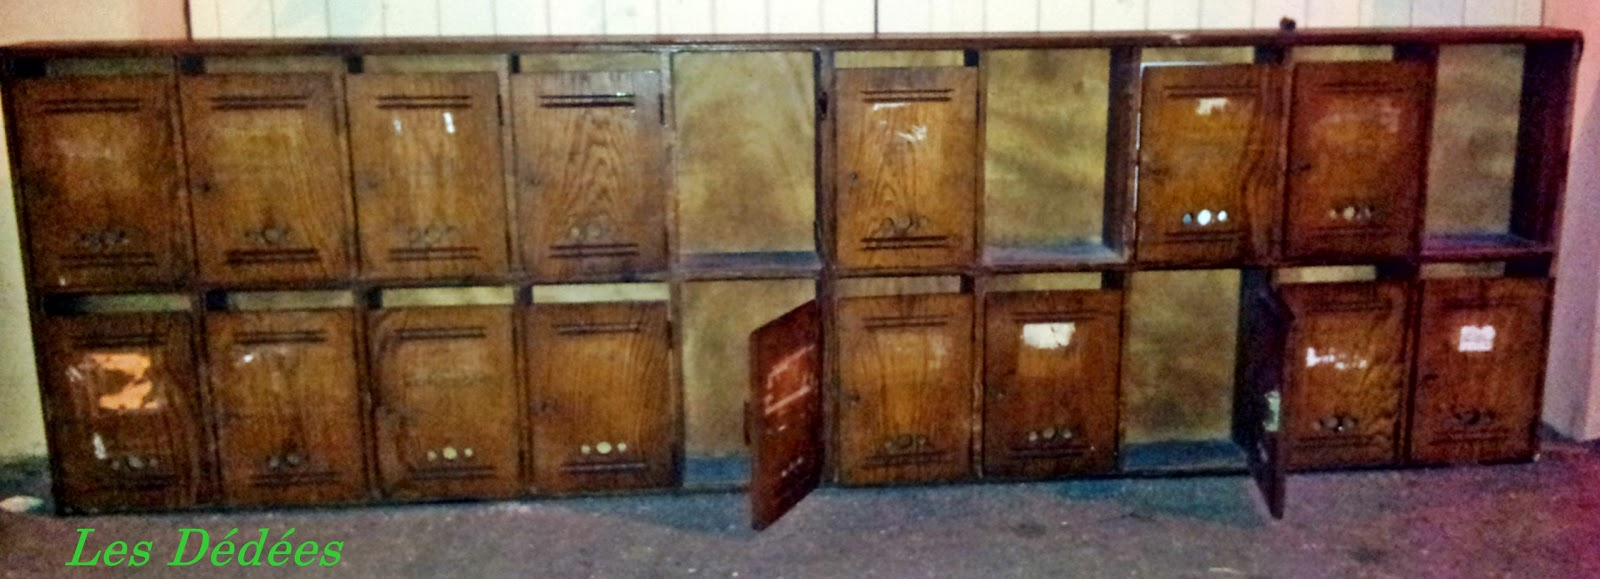 les dedees vintage recup creations rare anciennes. Black Bedroom Furniture Sets. Home Design Ideas